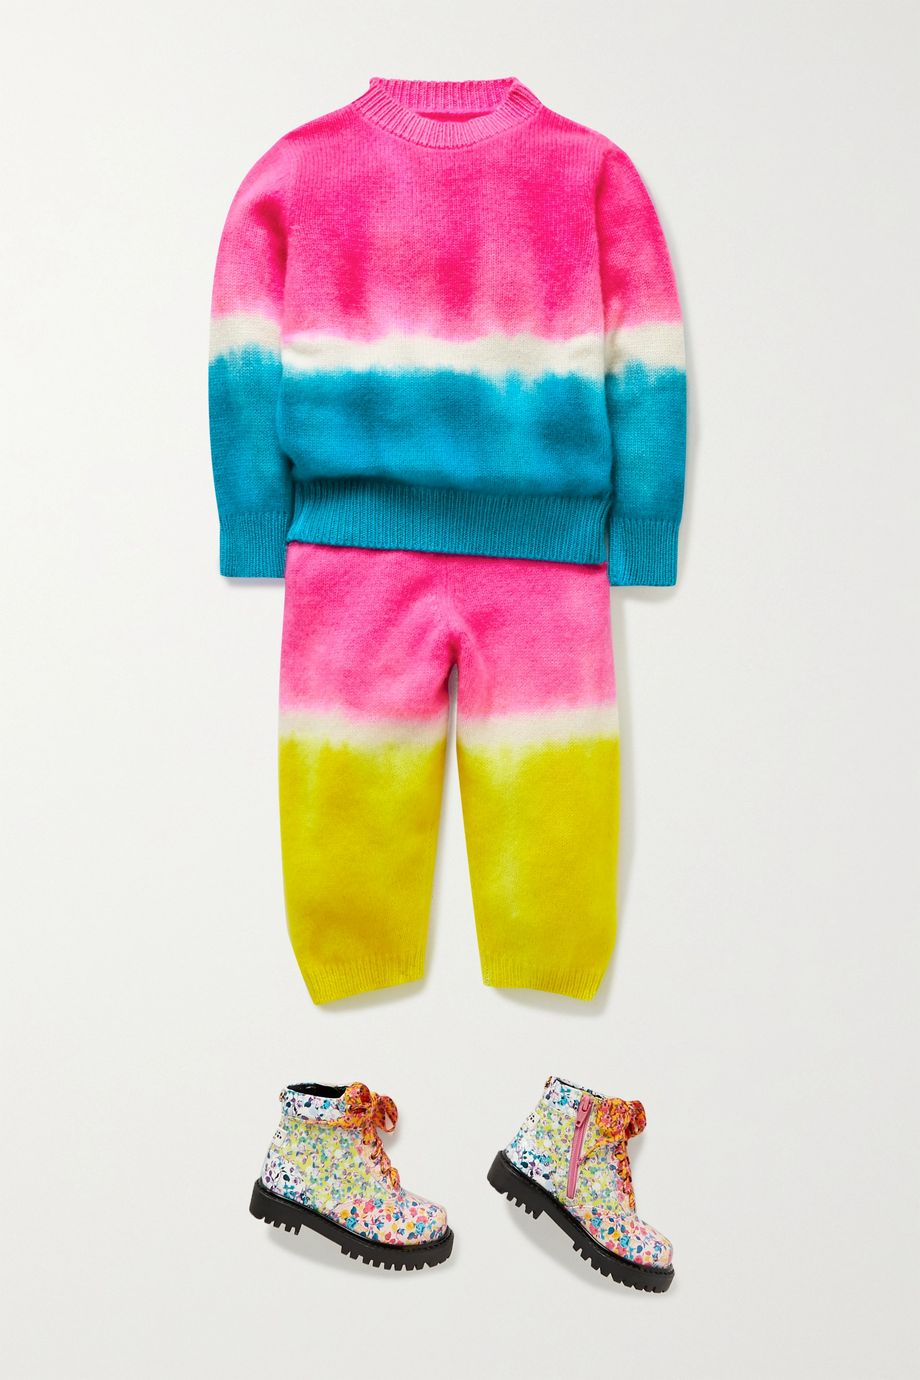 The Elder Statesman Kids Tie-dyed cashmere sweater